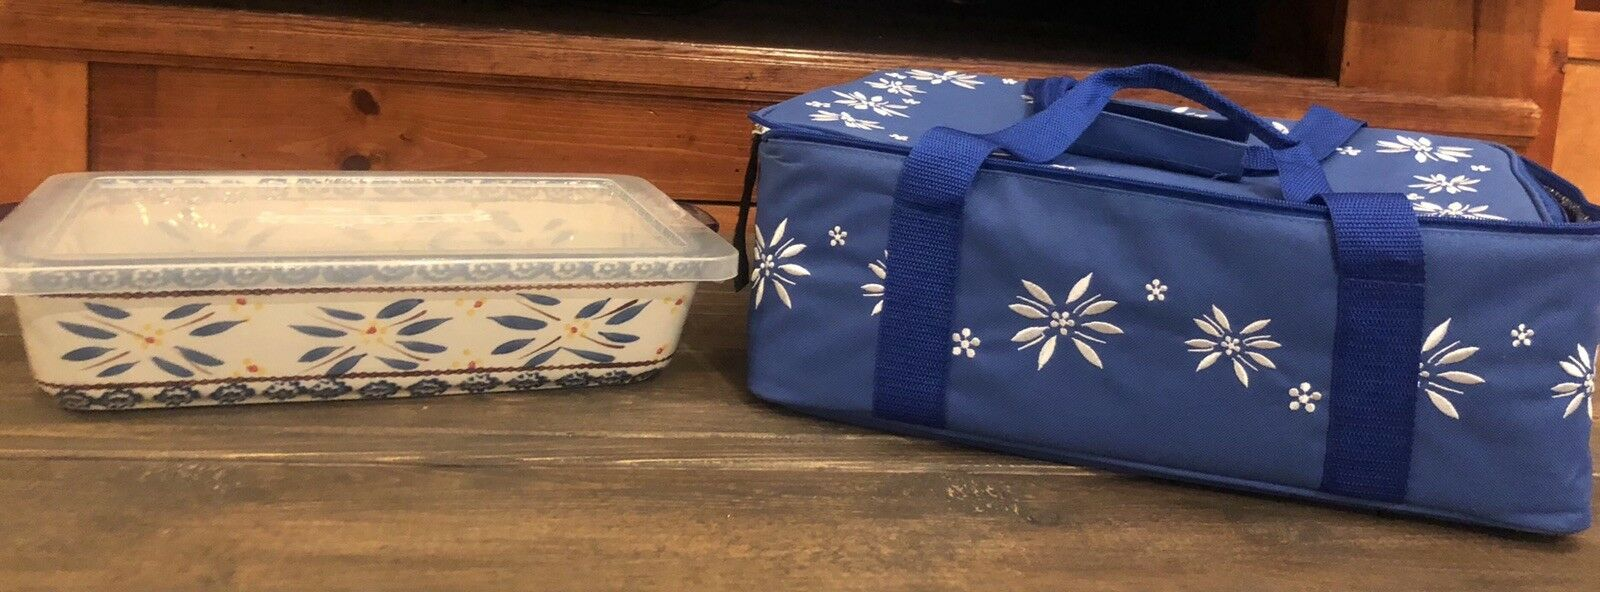 Temp-tations Square 13x9 Baker Floral Lace bleu With Carry Bag